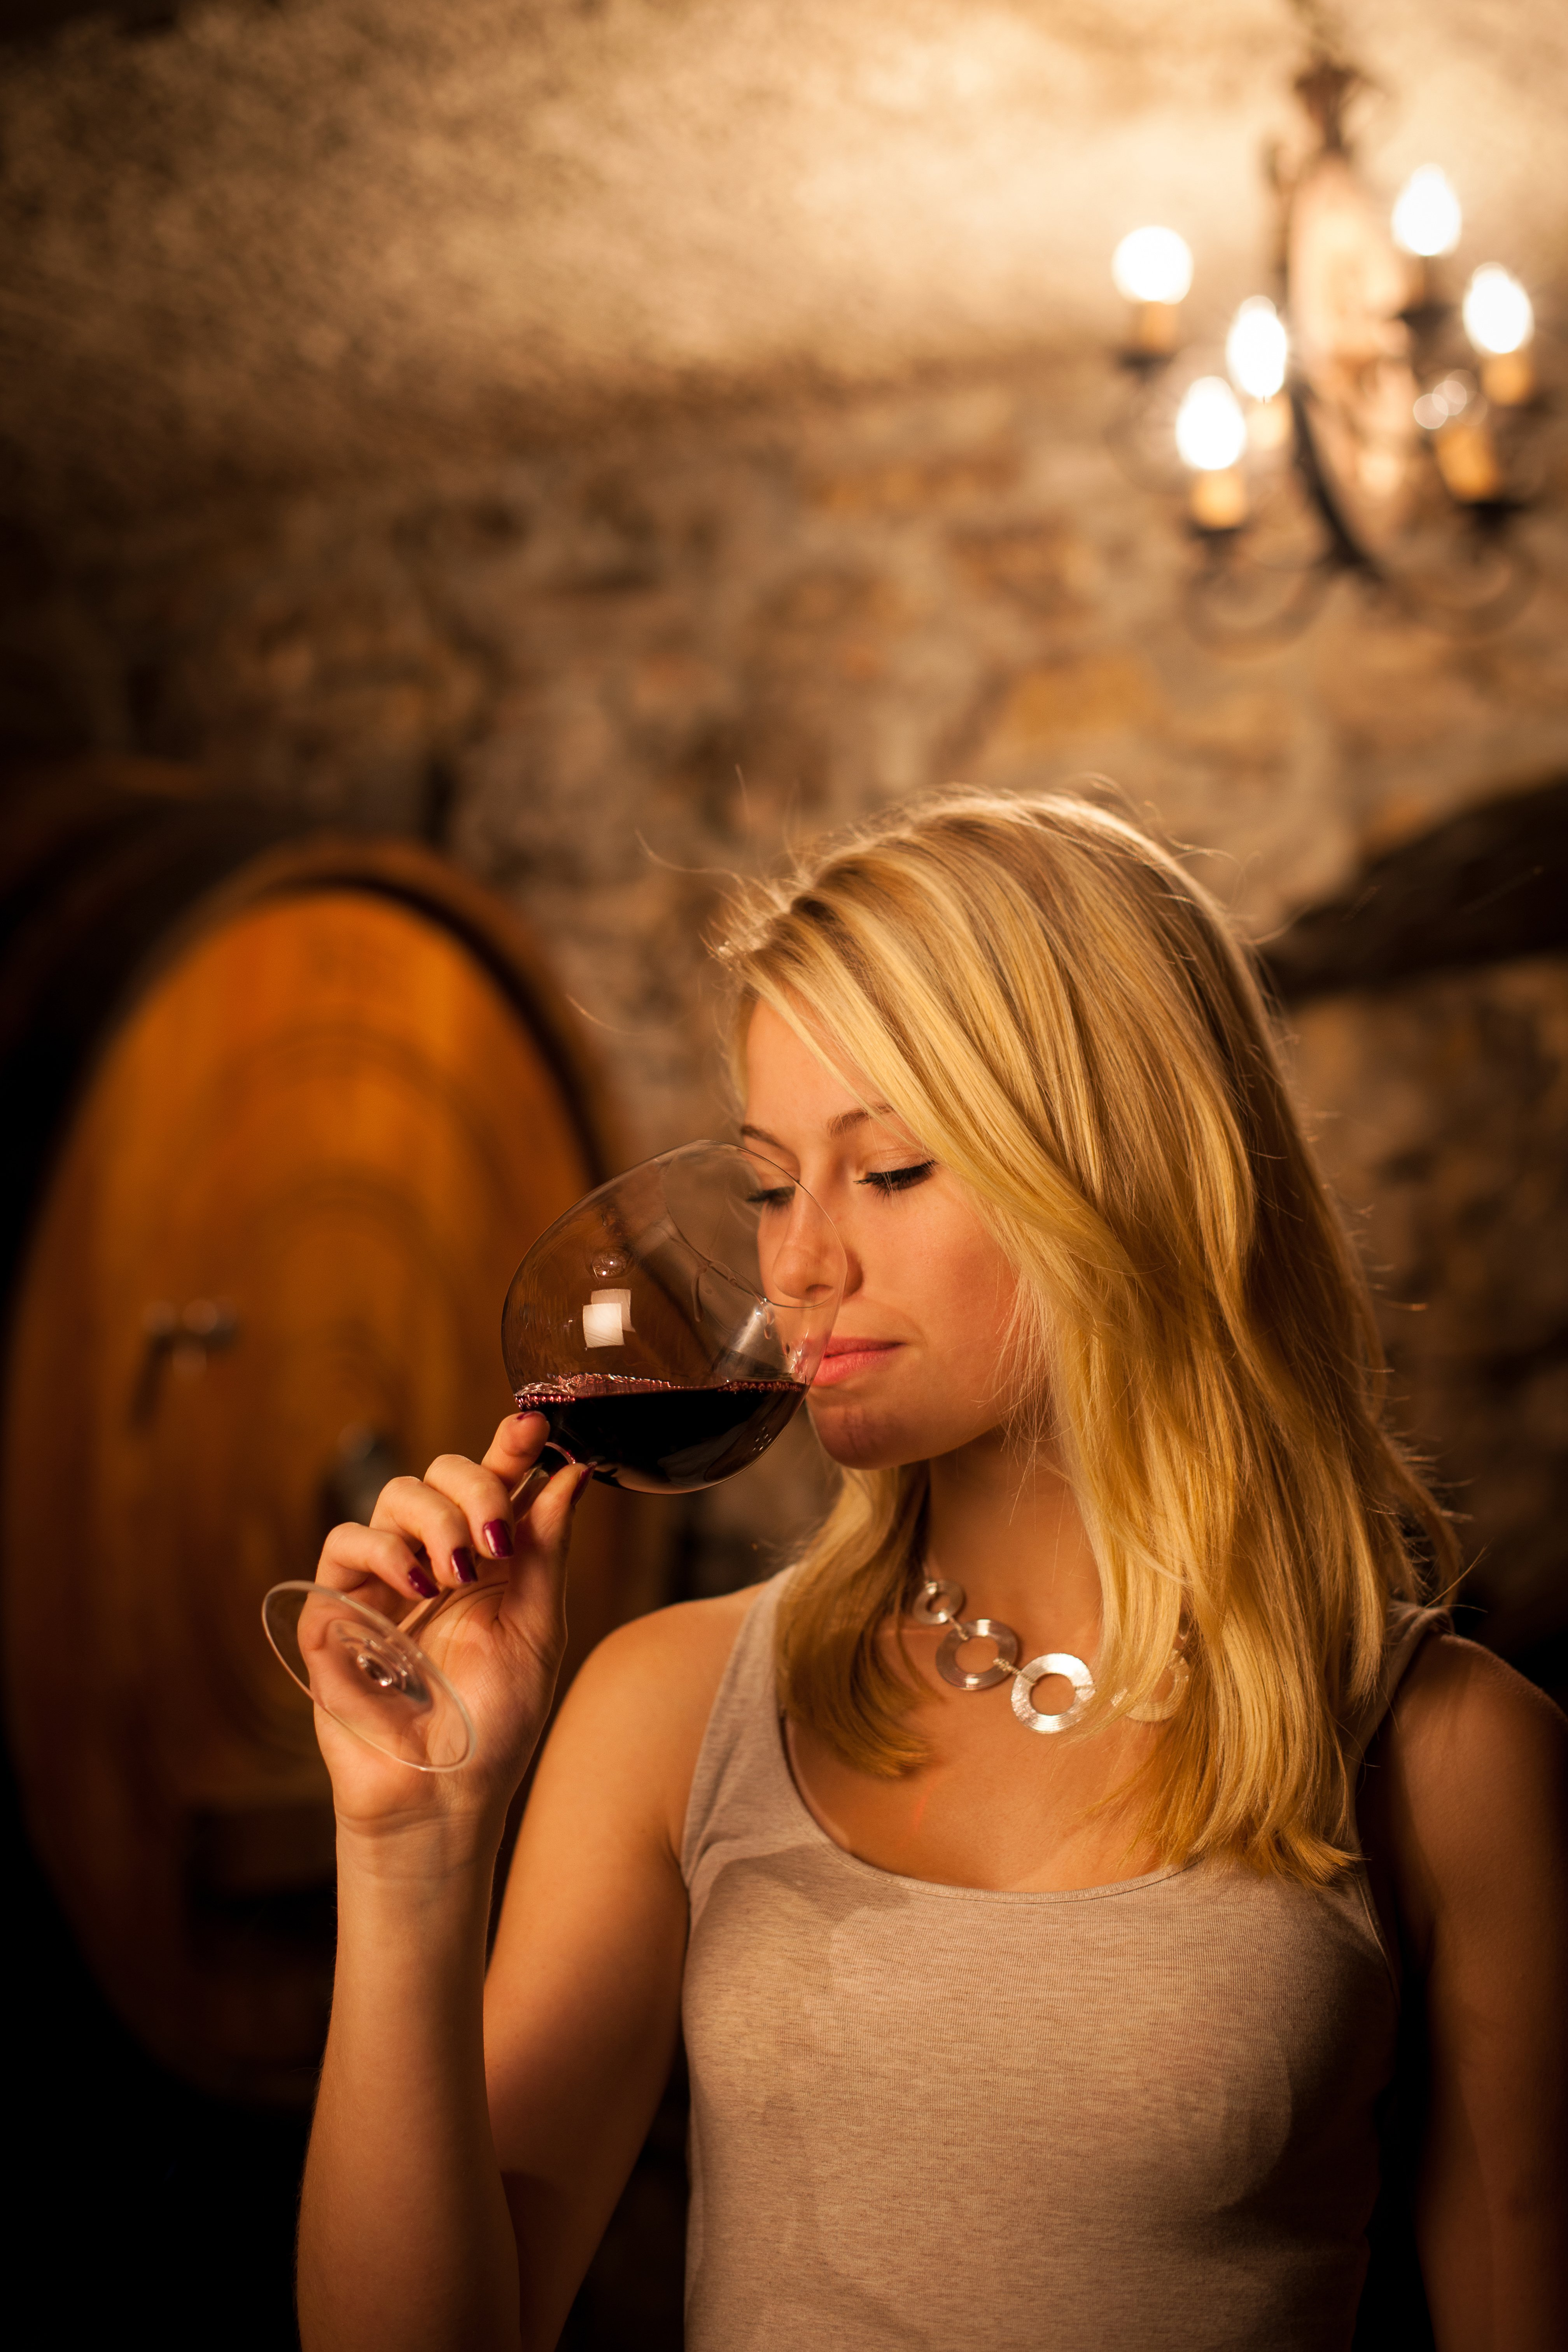 Alcohol effects on skin